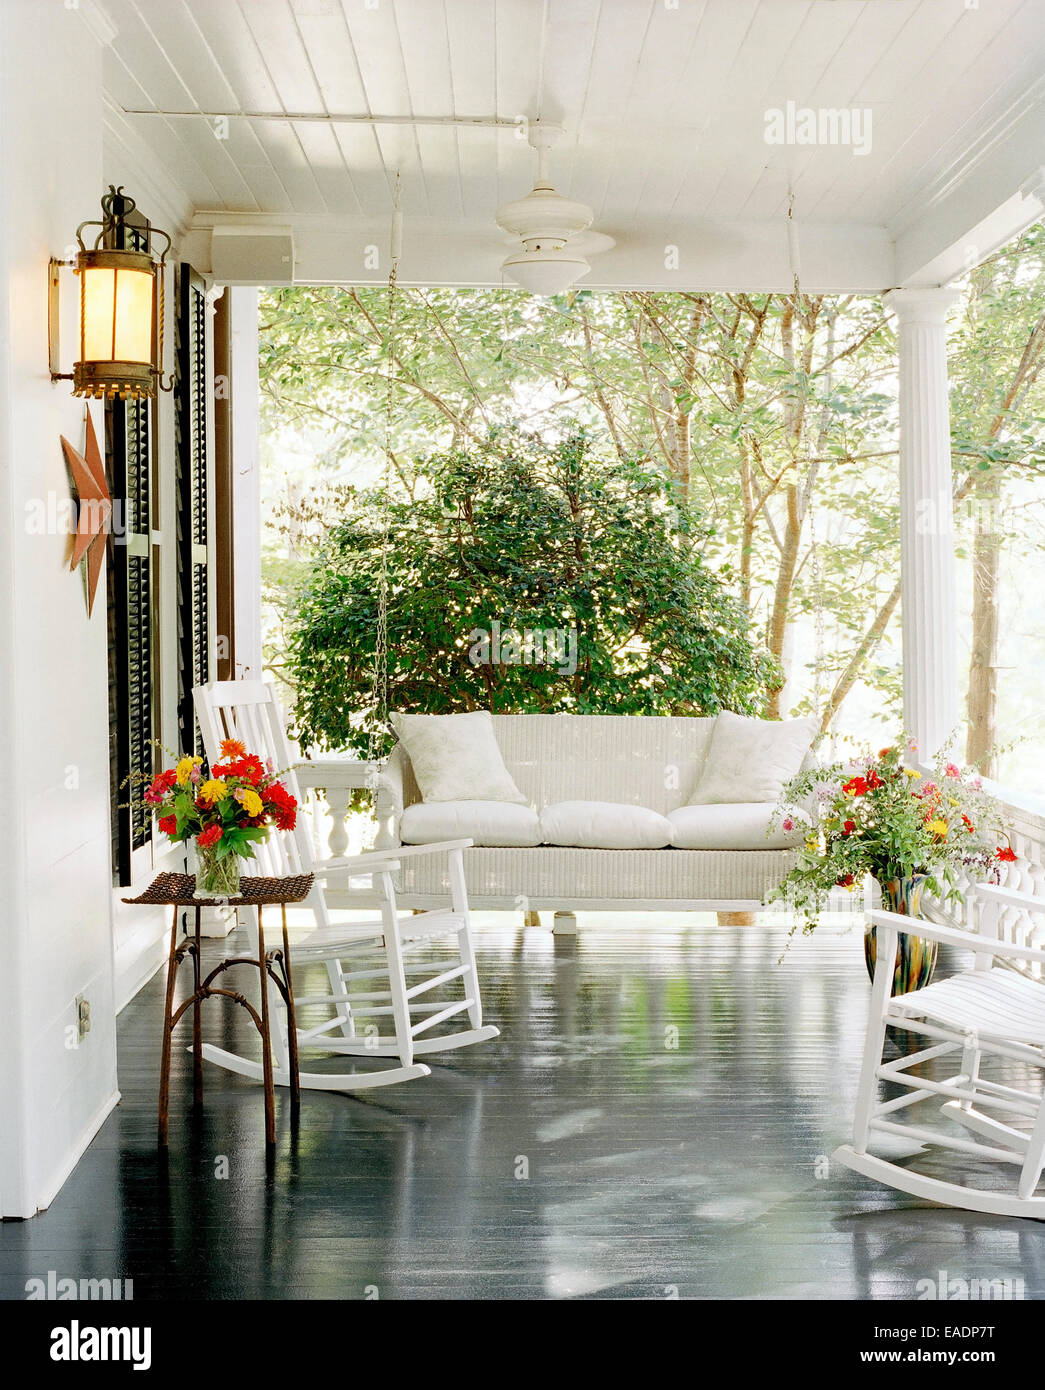 white porch in American South - Stock Image